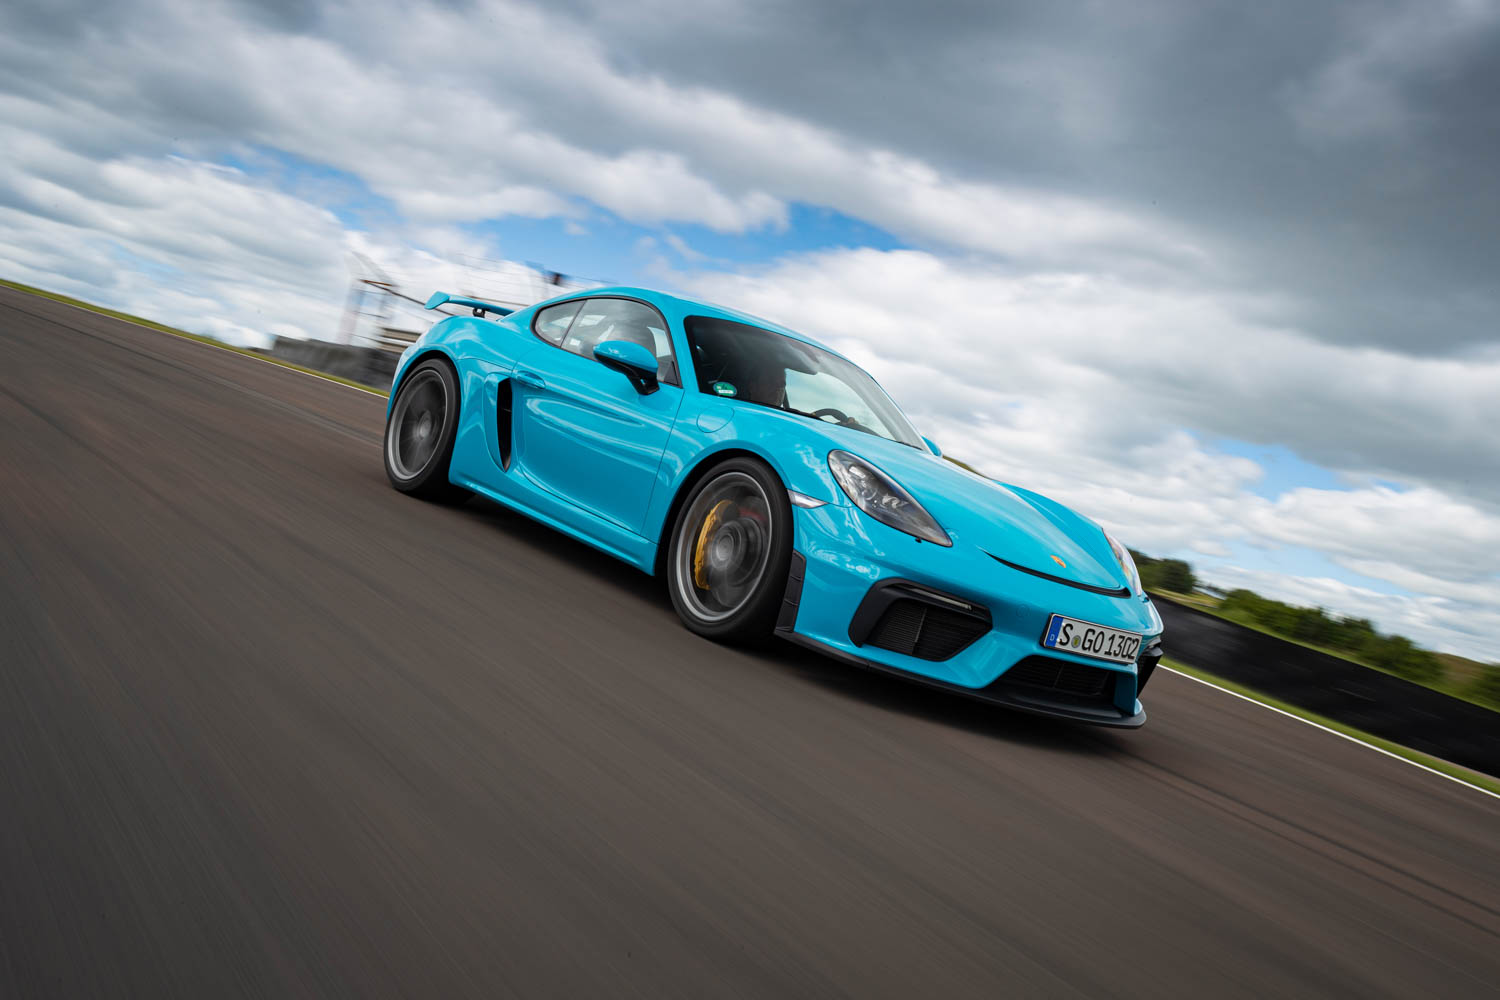 Porsche 718 Cayman GT4 on the track